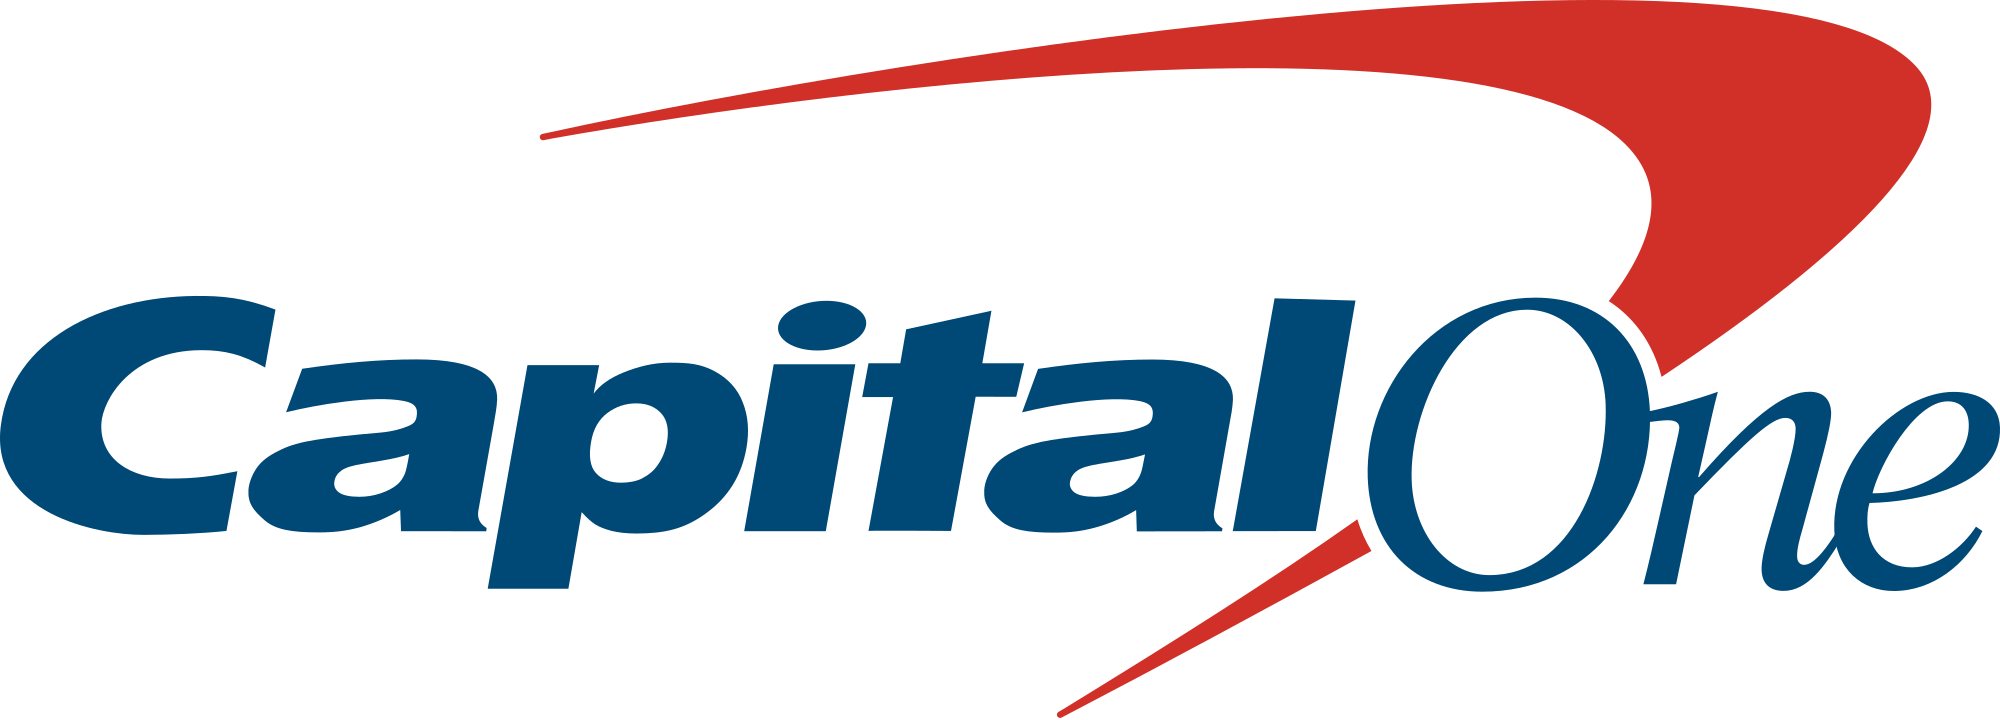 Senior Software Engineer (Full Stack - Back End) role from Capital One in Plano, TX